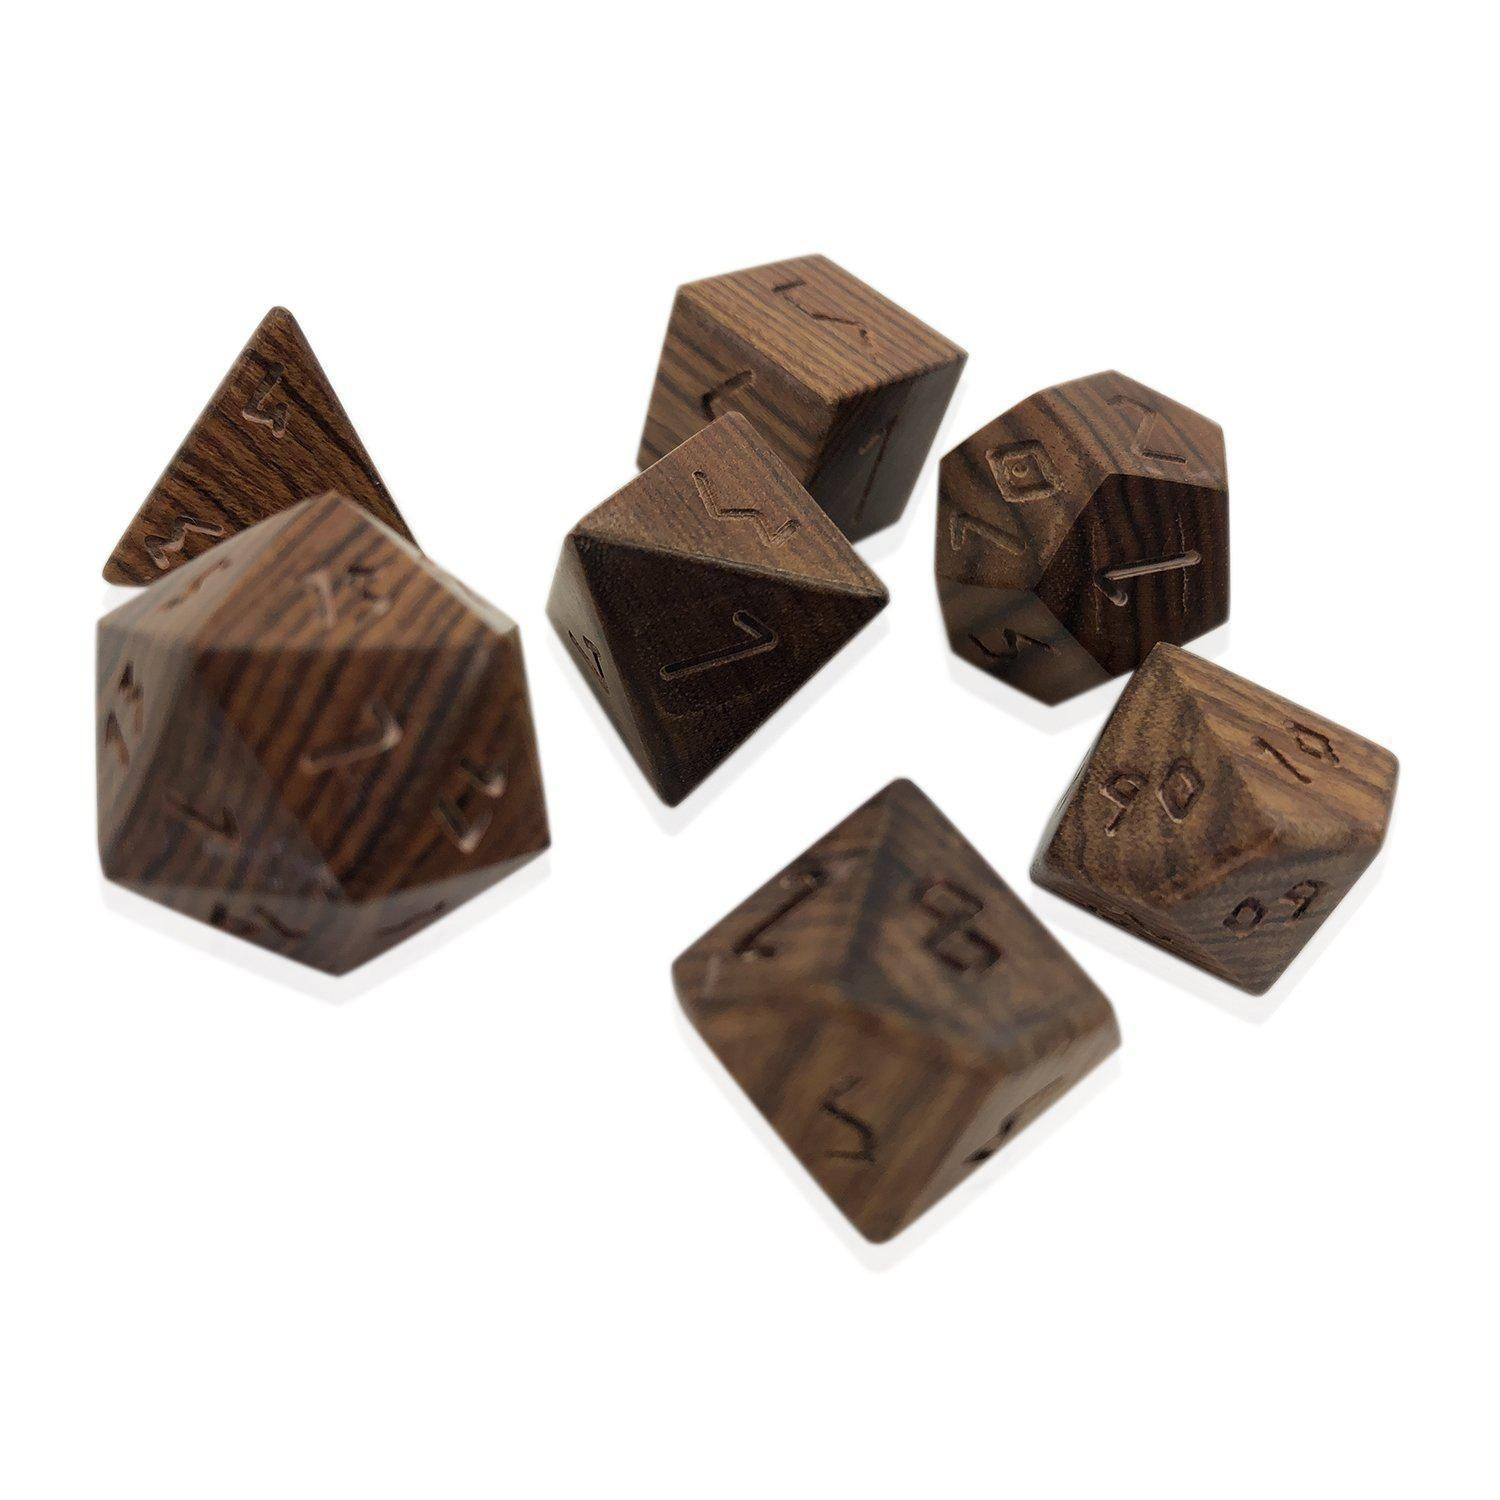 Madagascar Rosewood - 7 Piece RPG Wooden Dice Set-Dice-Norse Foundry-DND Dice-Polyhedral Dice-D20-Metal Dice-Precision Dice-Luxury Dice-Dungeons and Dragons-D&D-